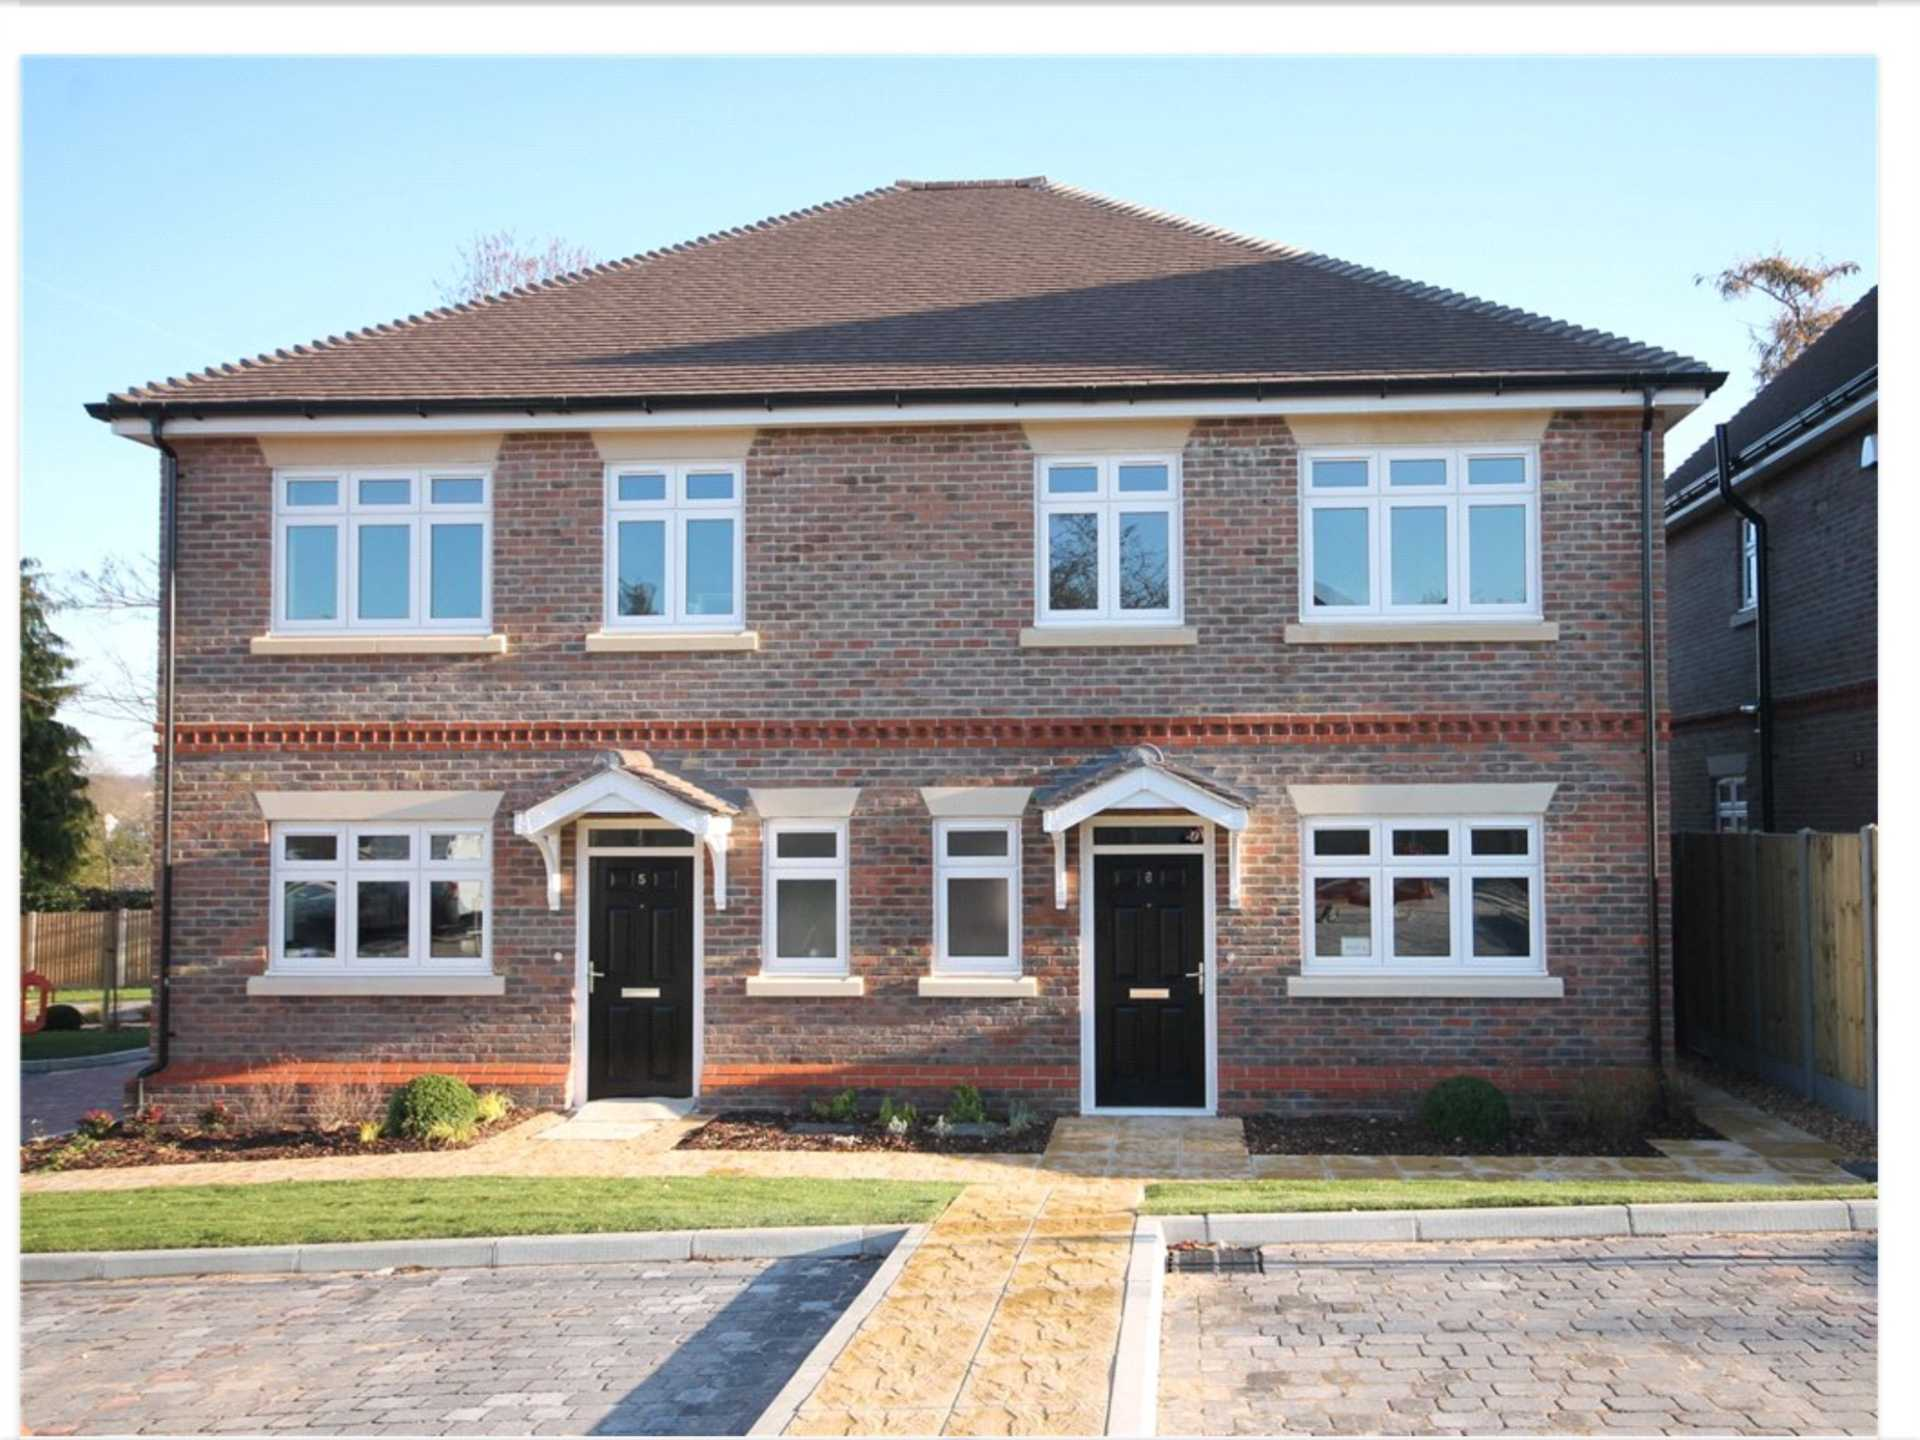 Direct Residential - 3 Bedroom Semi-Detached, Mimosa Close, Epsom, KT17 3FF